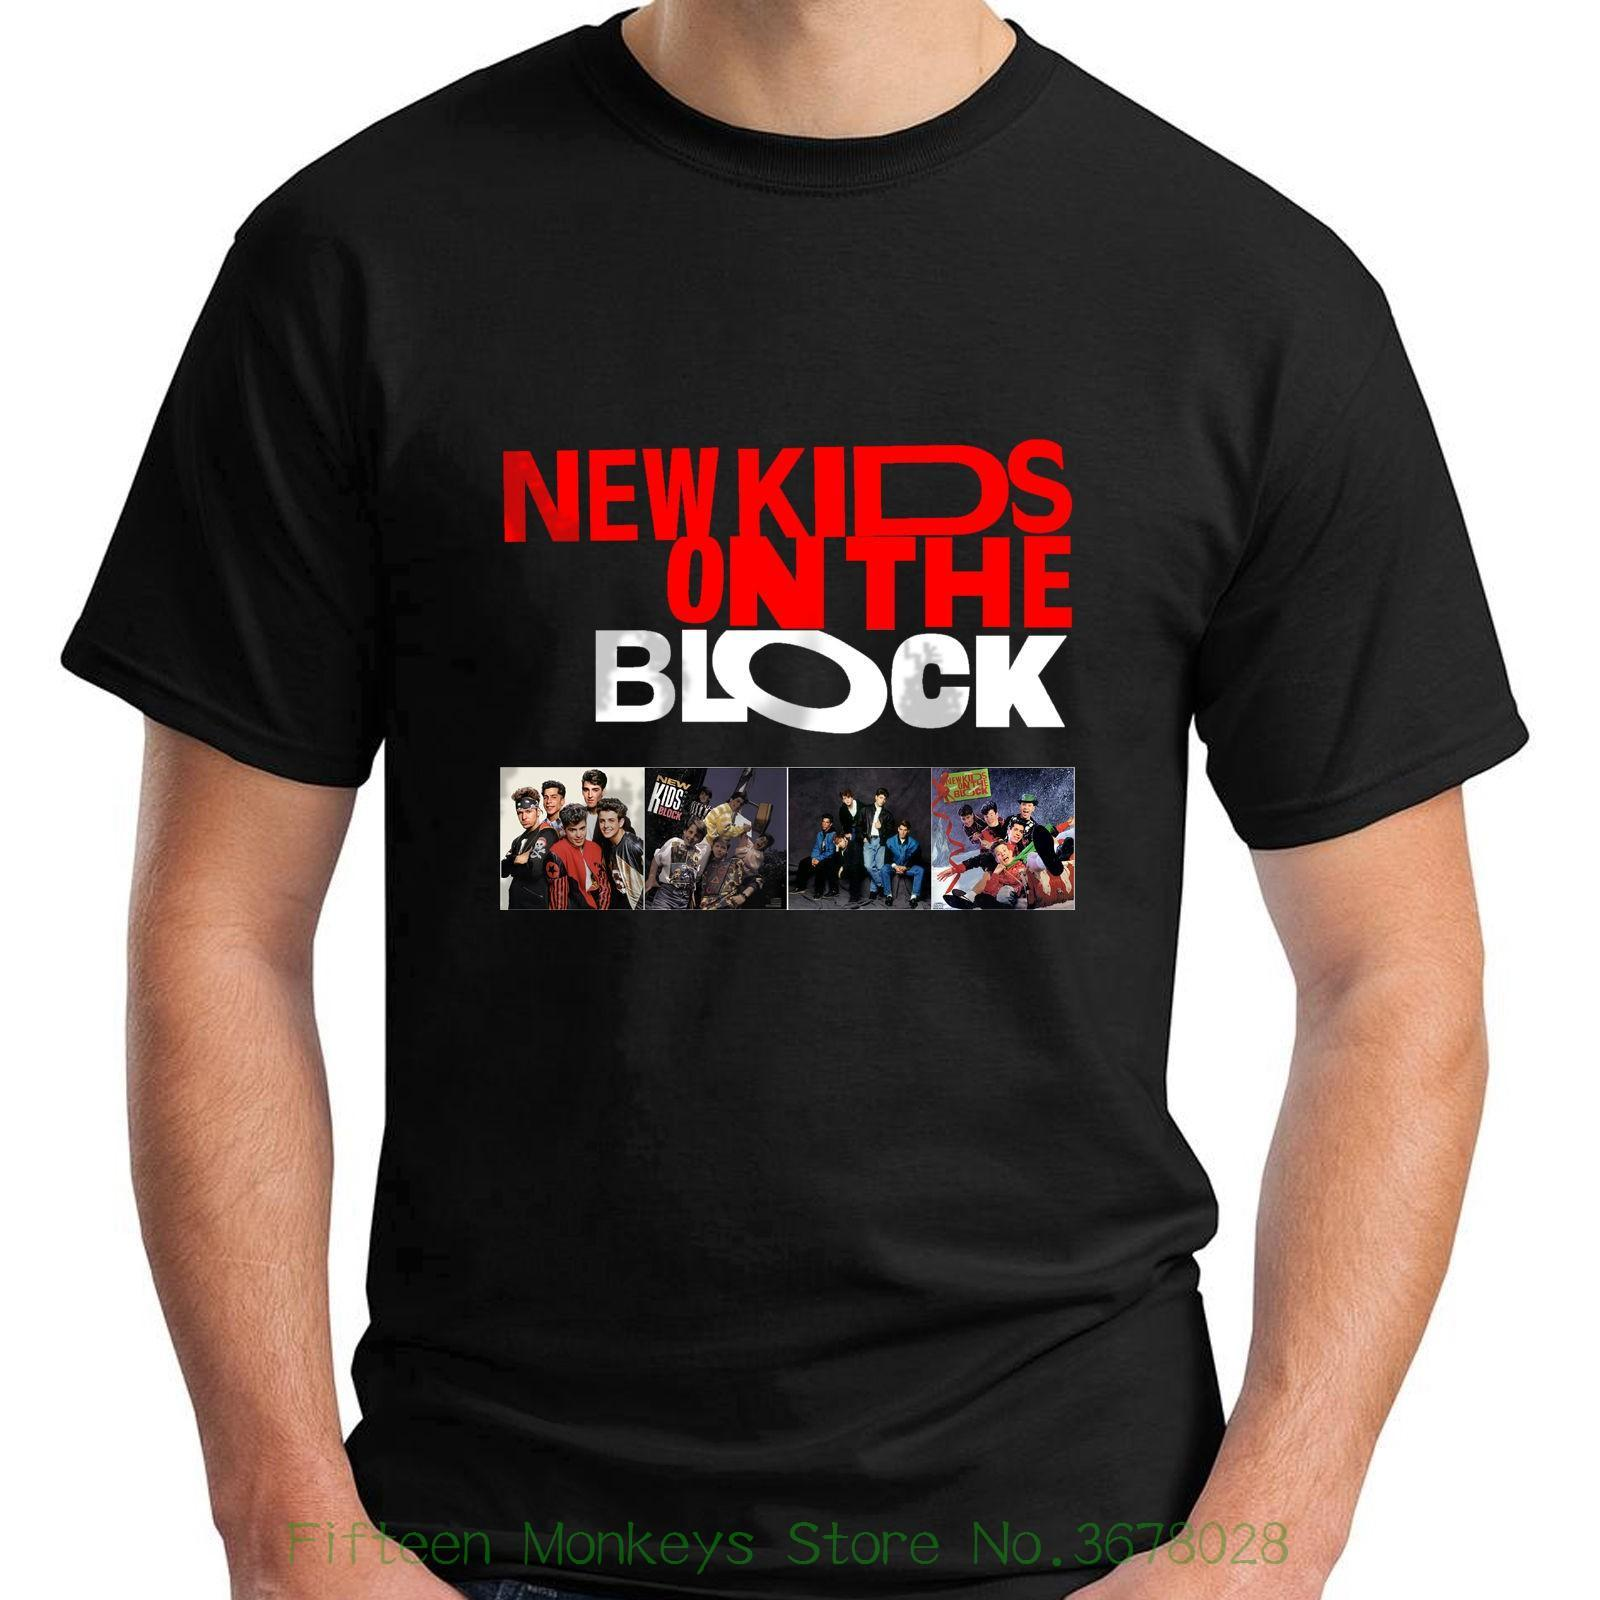 New Kids On The Block T-Shirt 30 Years Of NKOTB T-Shirt S-5XL